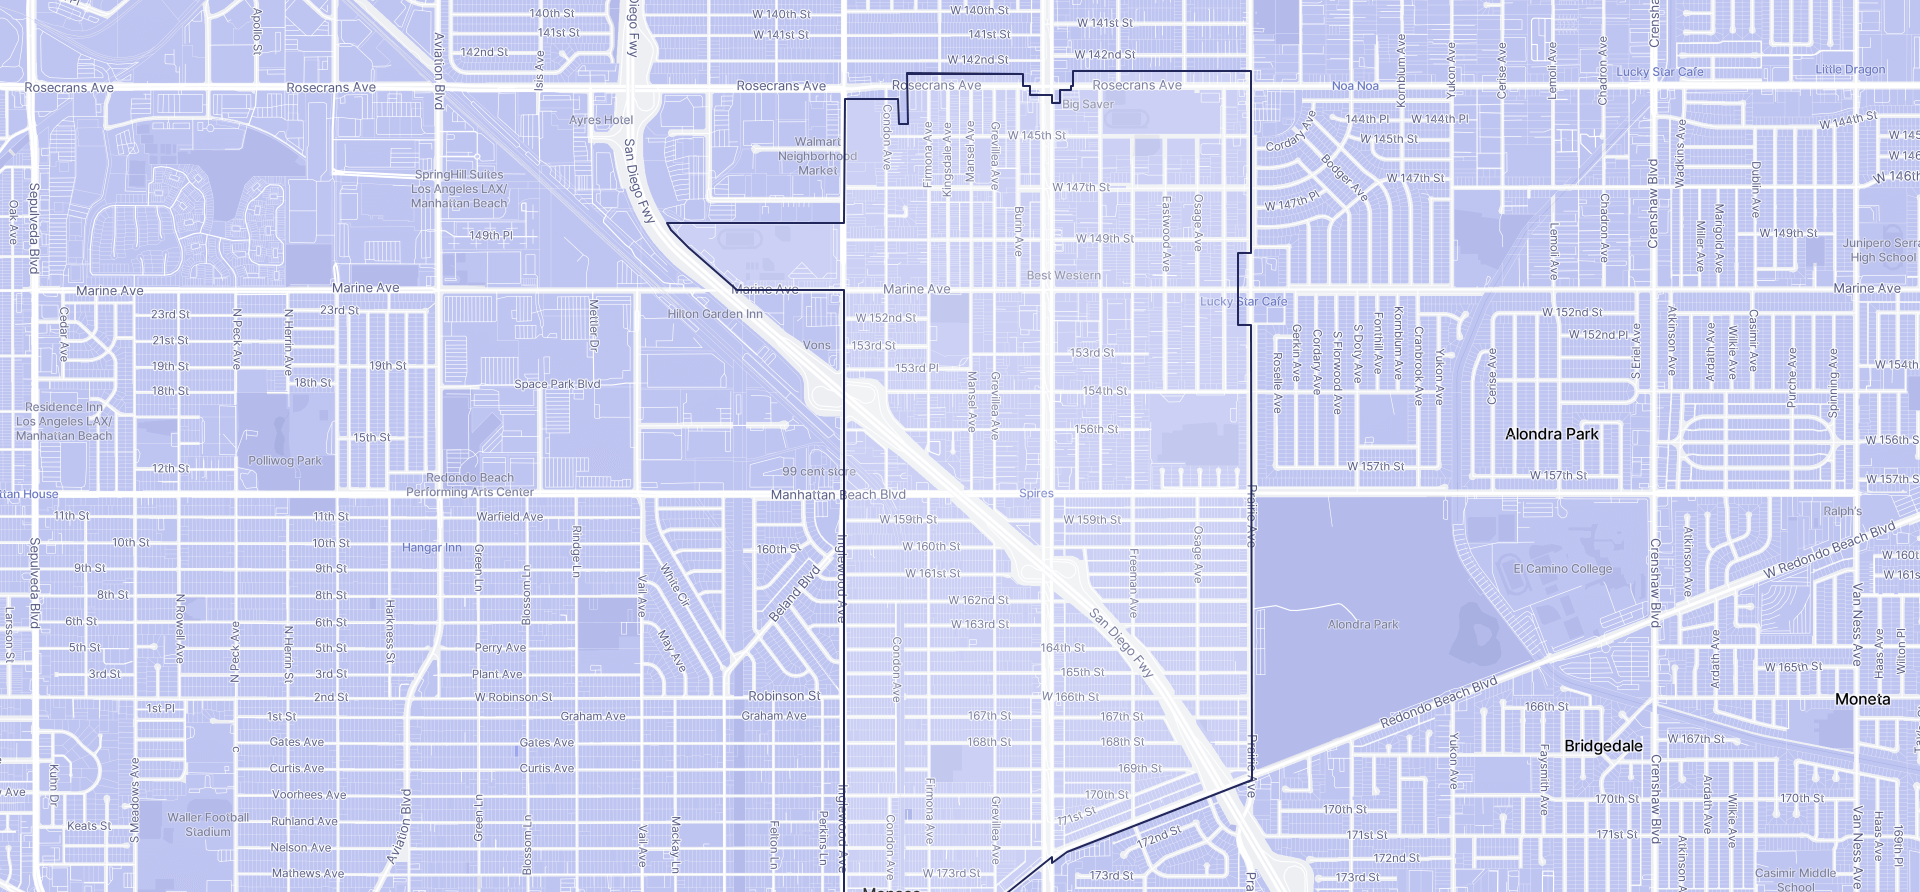 Image of Lawndale boundaries on a map.